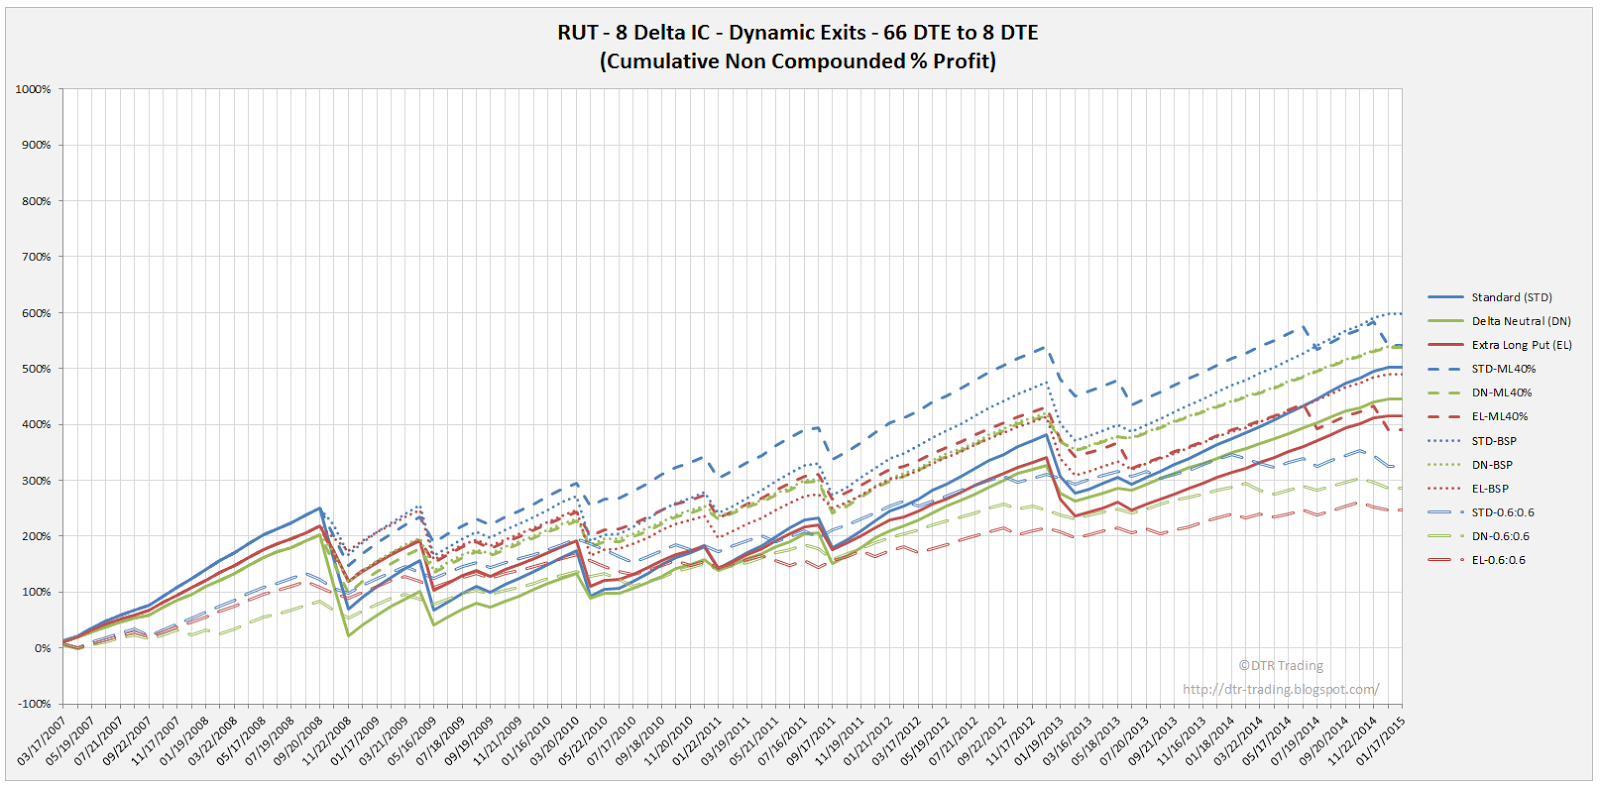 Iron Condor Dynamic Exit Equity Curves RUT 66 DTE 8 Delta All Versions